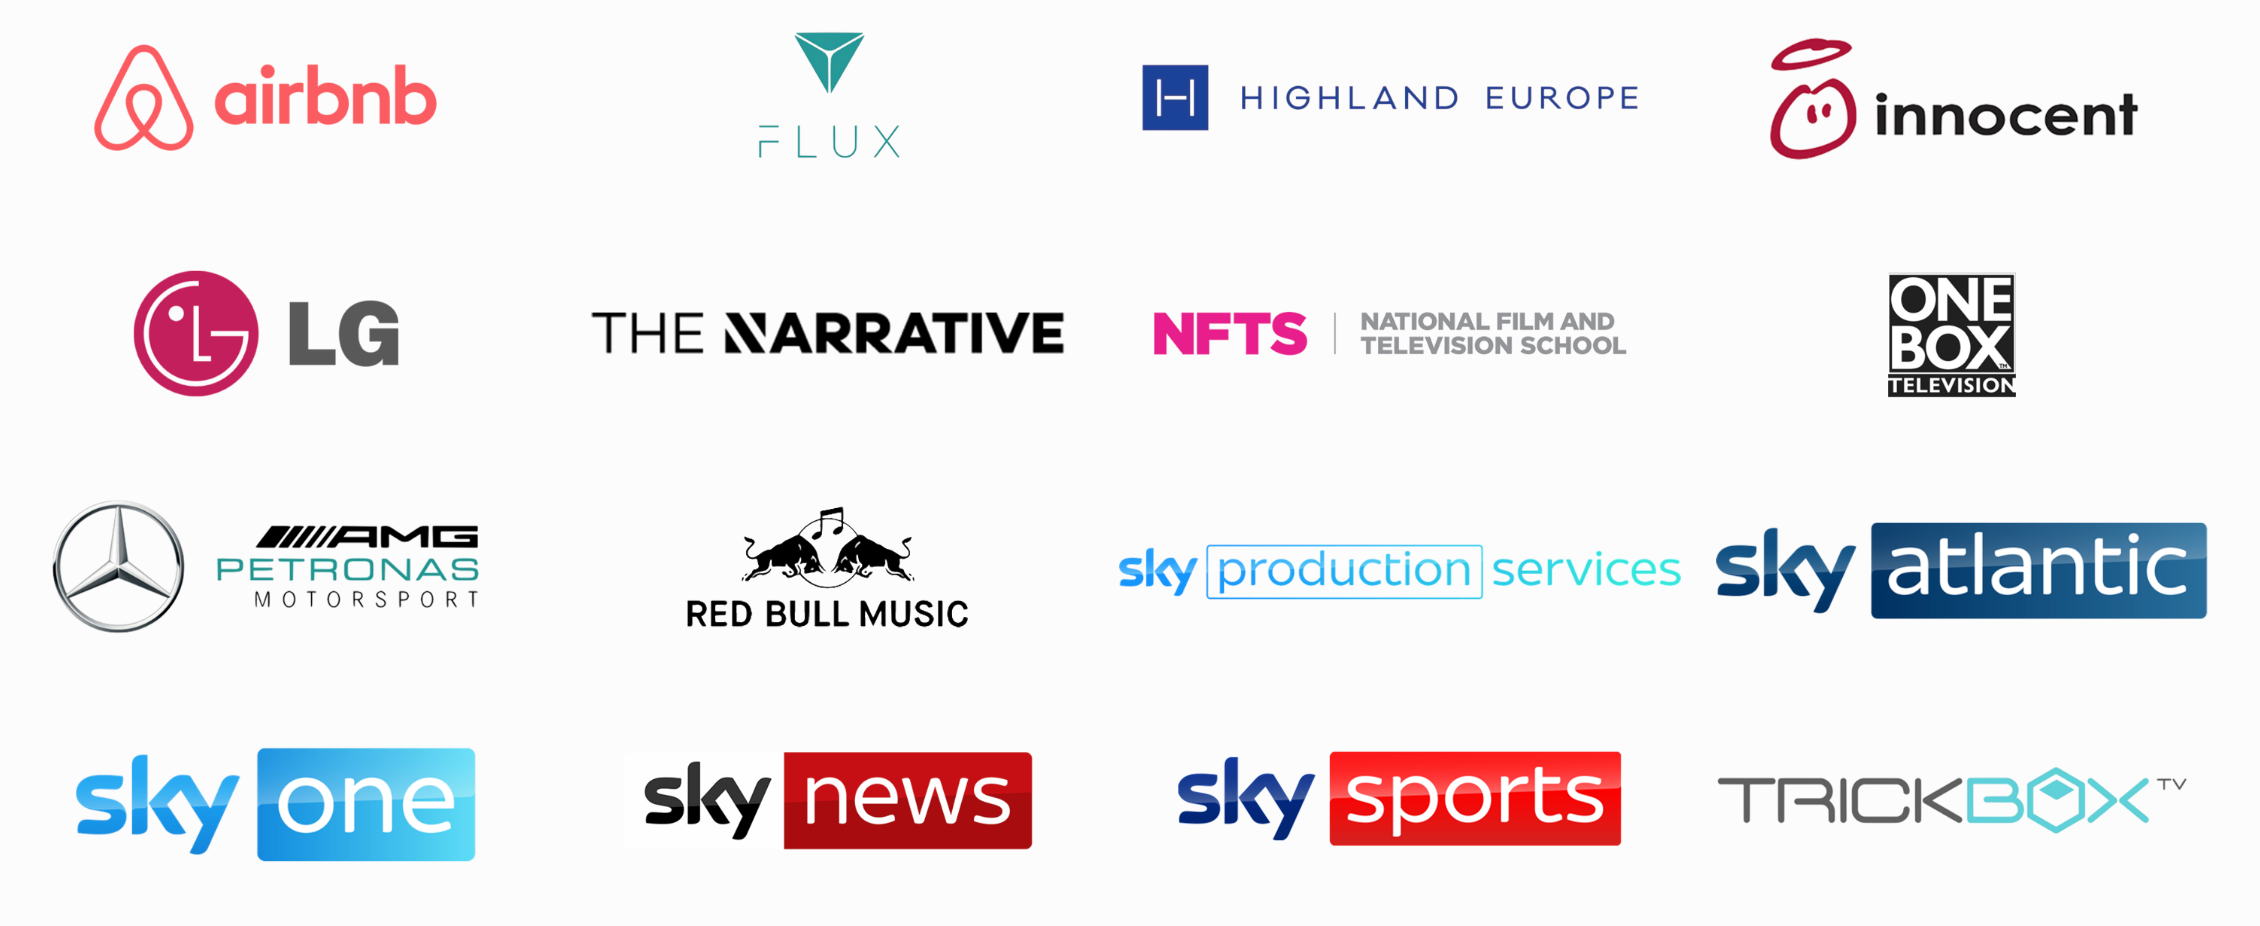 List of clients: Airbnb; Flux Broadcast; Highland Europe; Innocent Drinks; LG UK; The Narrative; National Film & Television School; One Box Television; AMG Petronas Motorsport; Red Bull Music; Sky Production Services; Sky Atlantic; Sky One; Sky News; Sky Sports; Trickbox TV